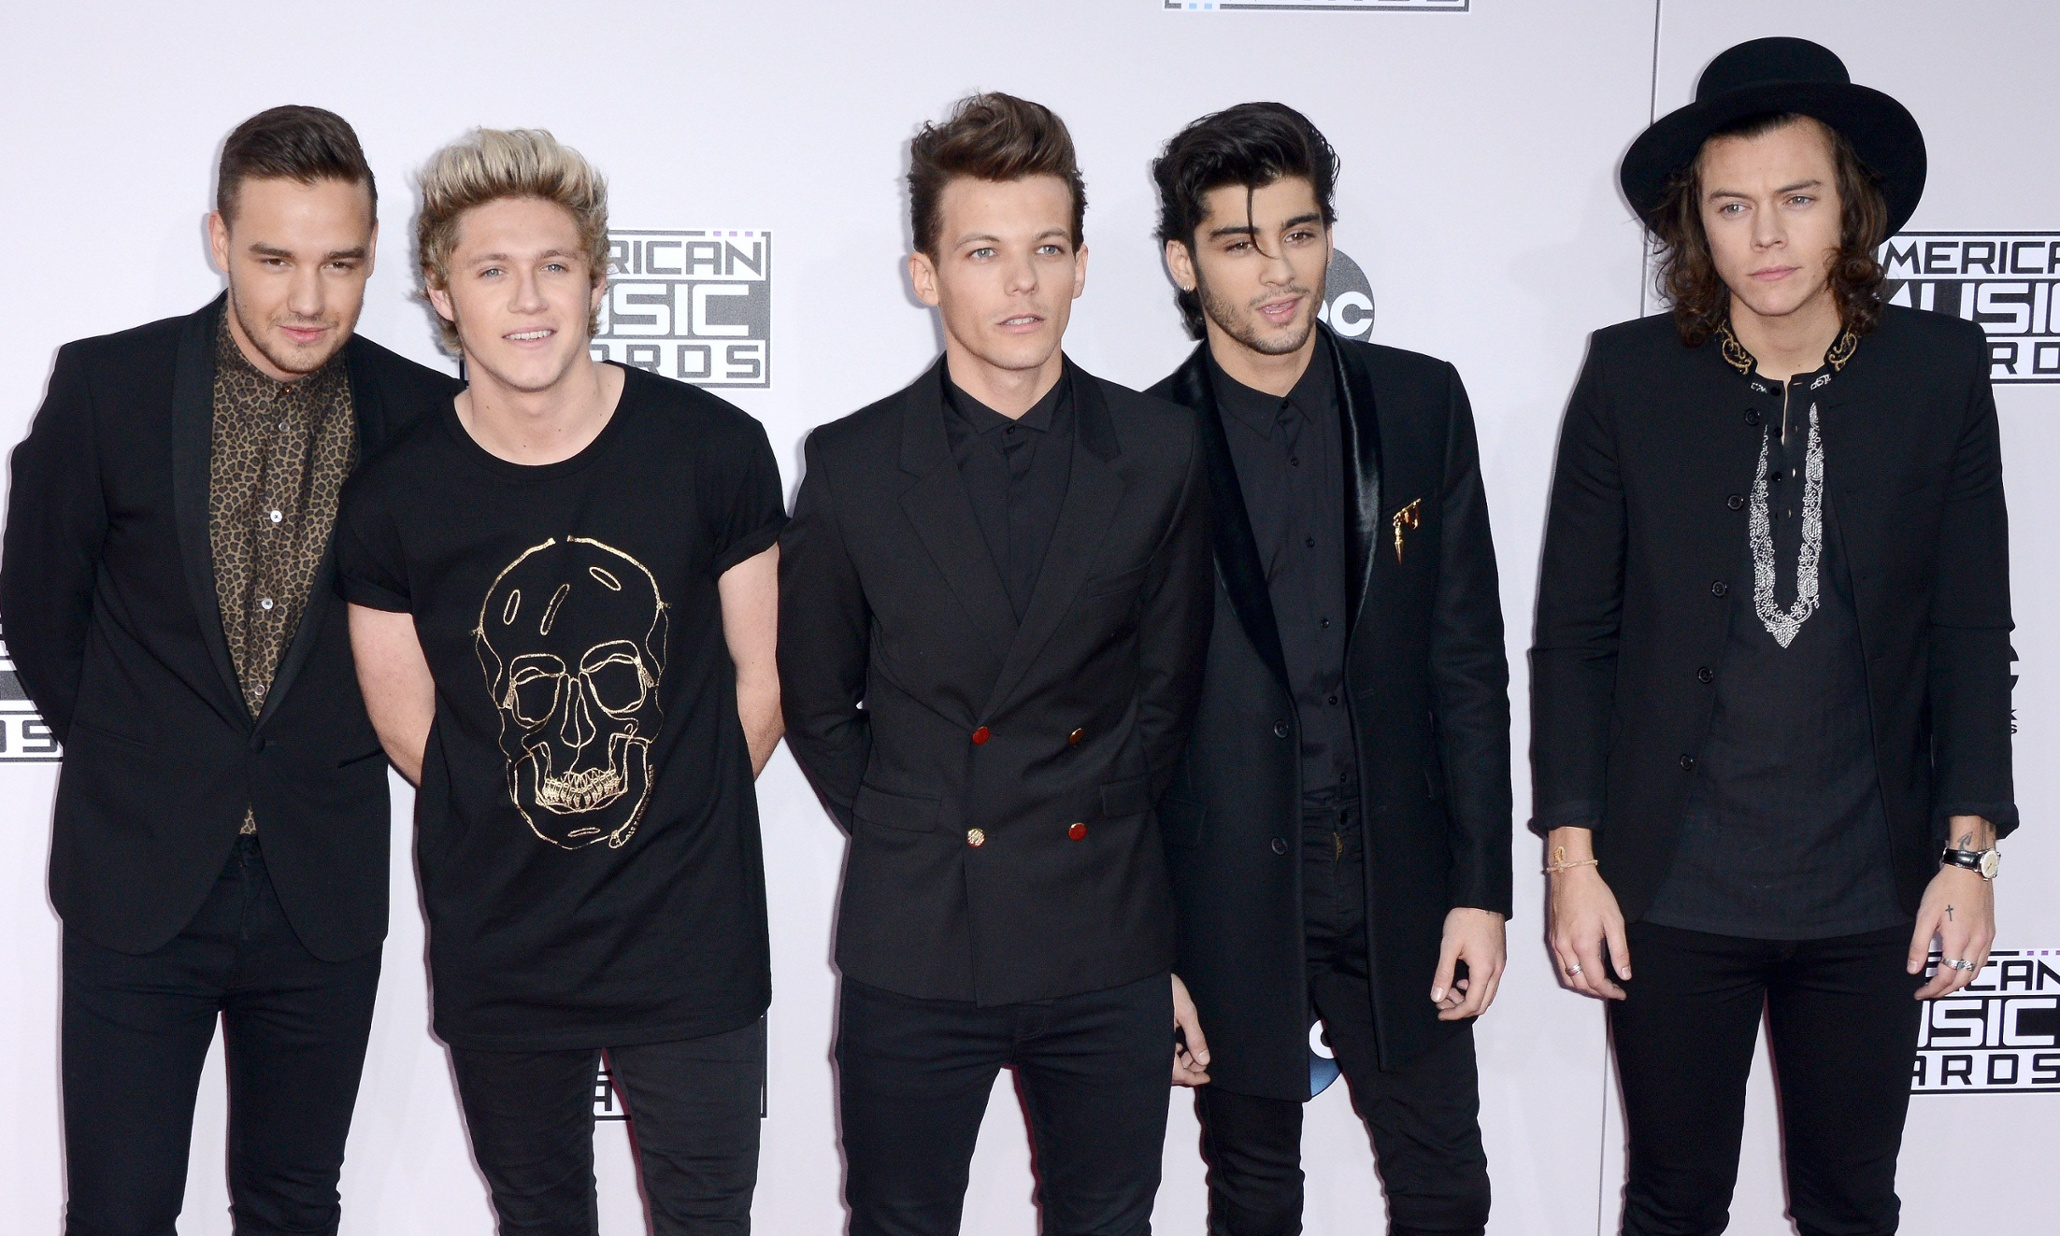 a471fe34-6d8e-4869-83d7-aabe9823425d-2060x1236 jpegOne Direction American Music Awards 2014